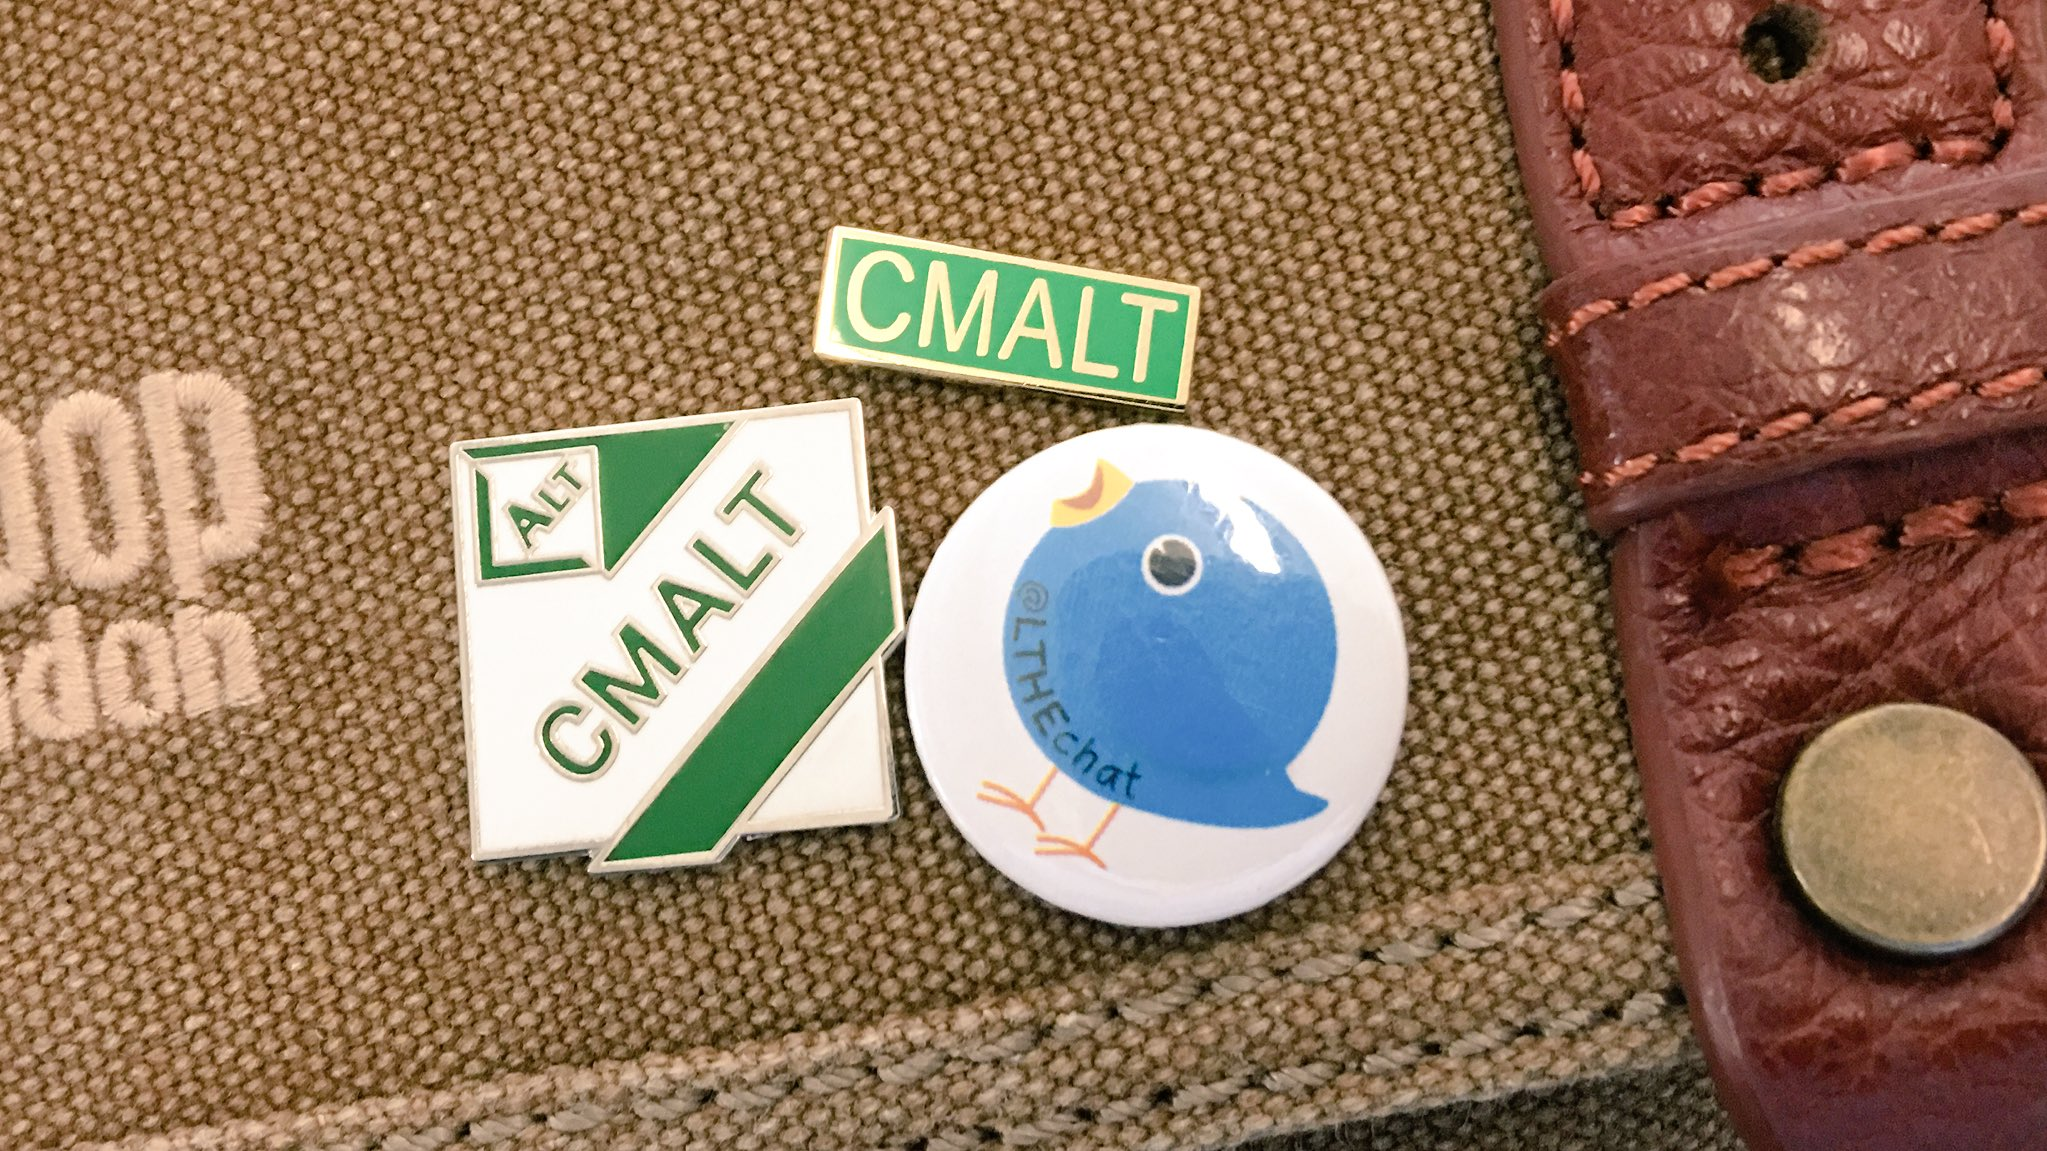 All badged up for #altc #cmalt #LTHEchat Any more for the collection... https://t.co/RwpwqM6uwB